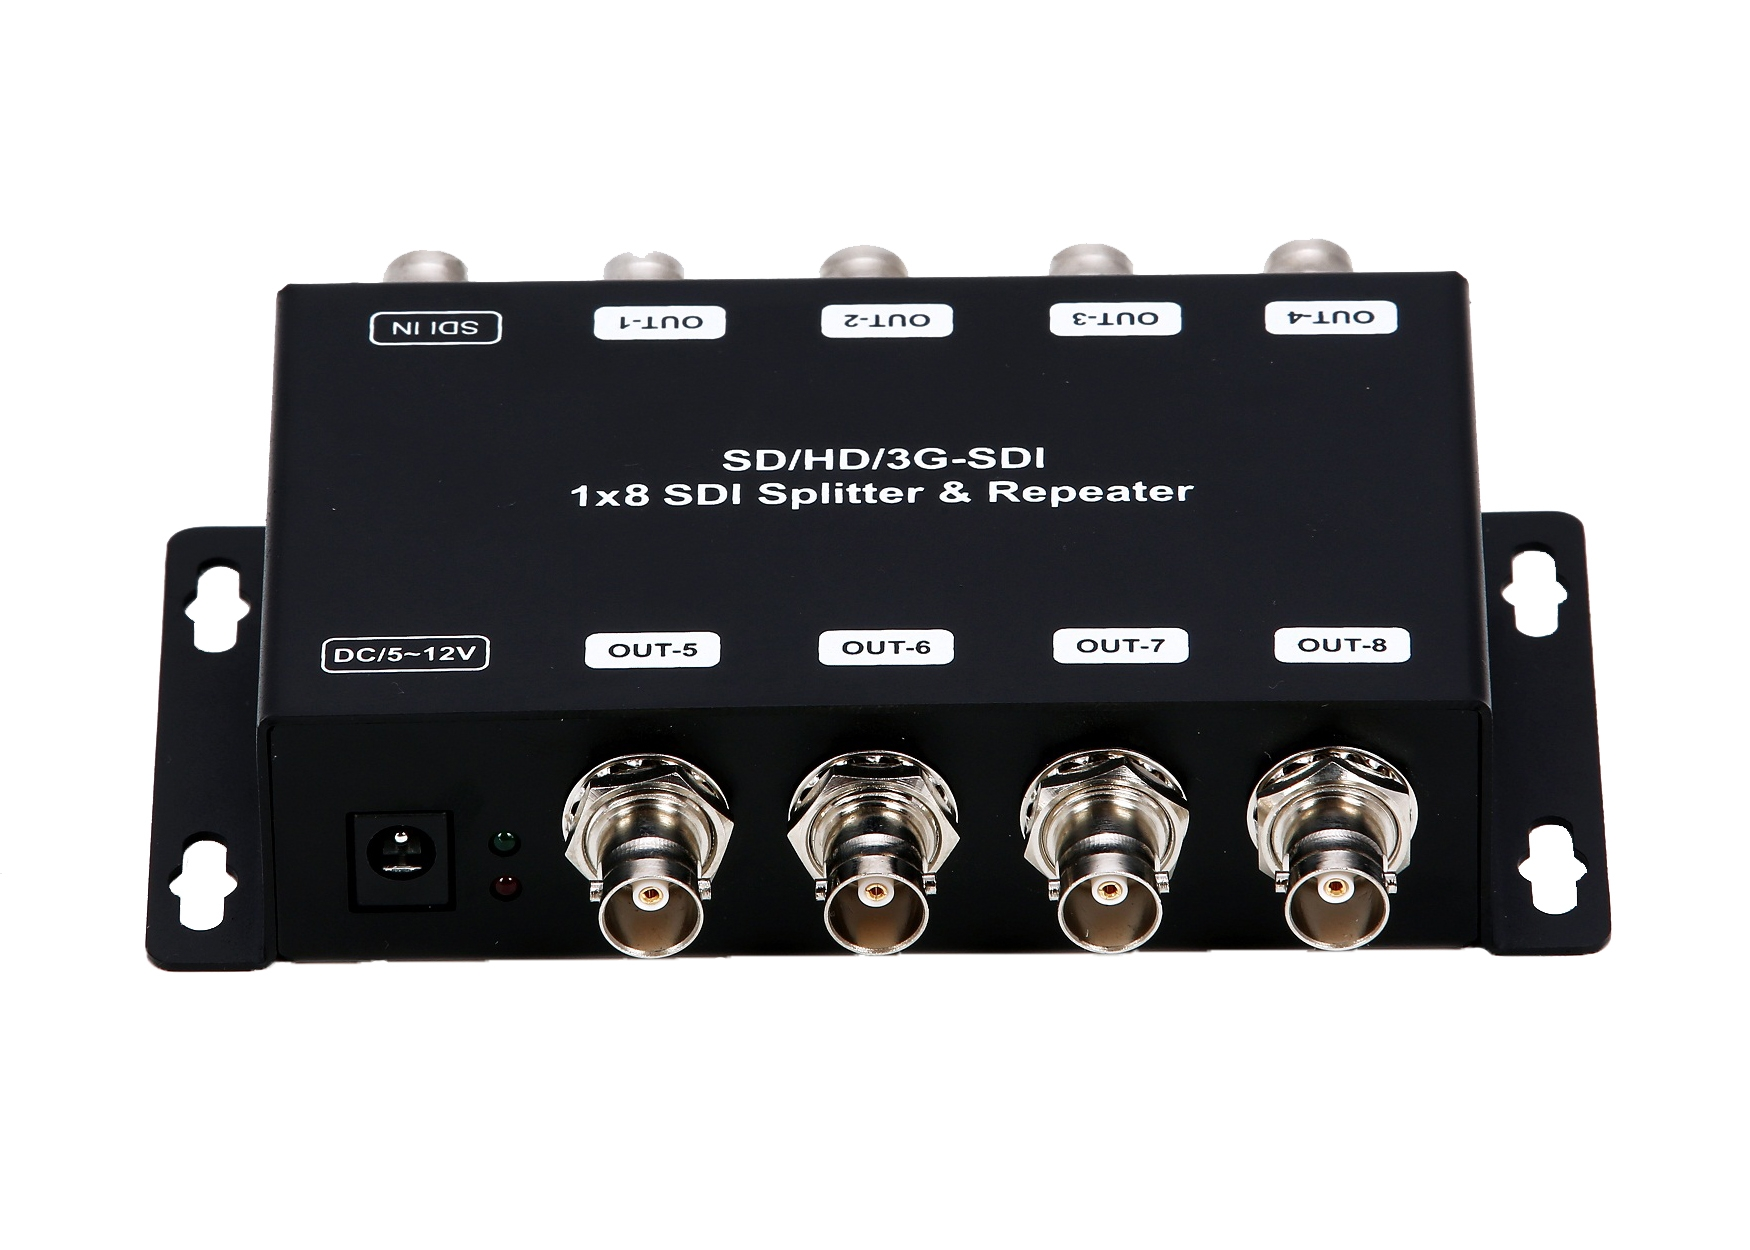 1x8 3G SDI Splitter & Repeater with Re-clocking function